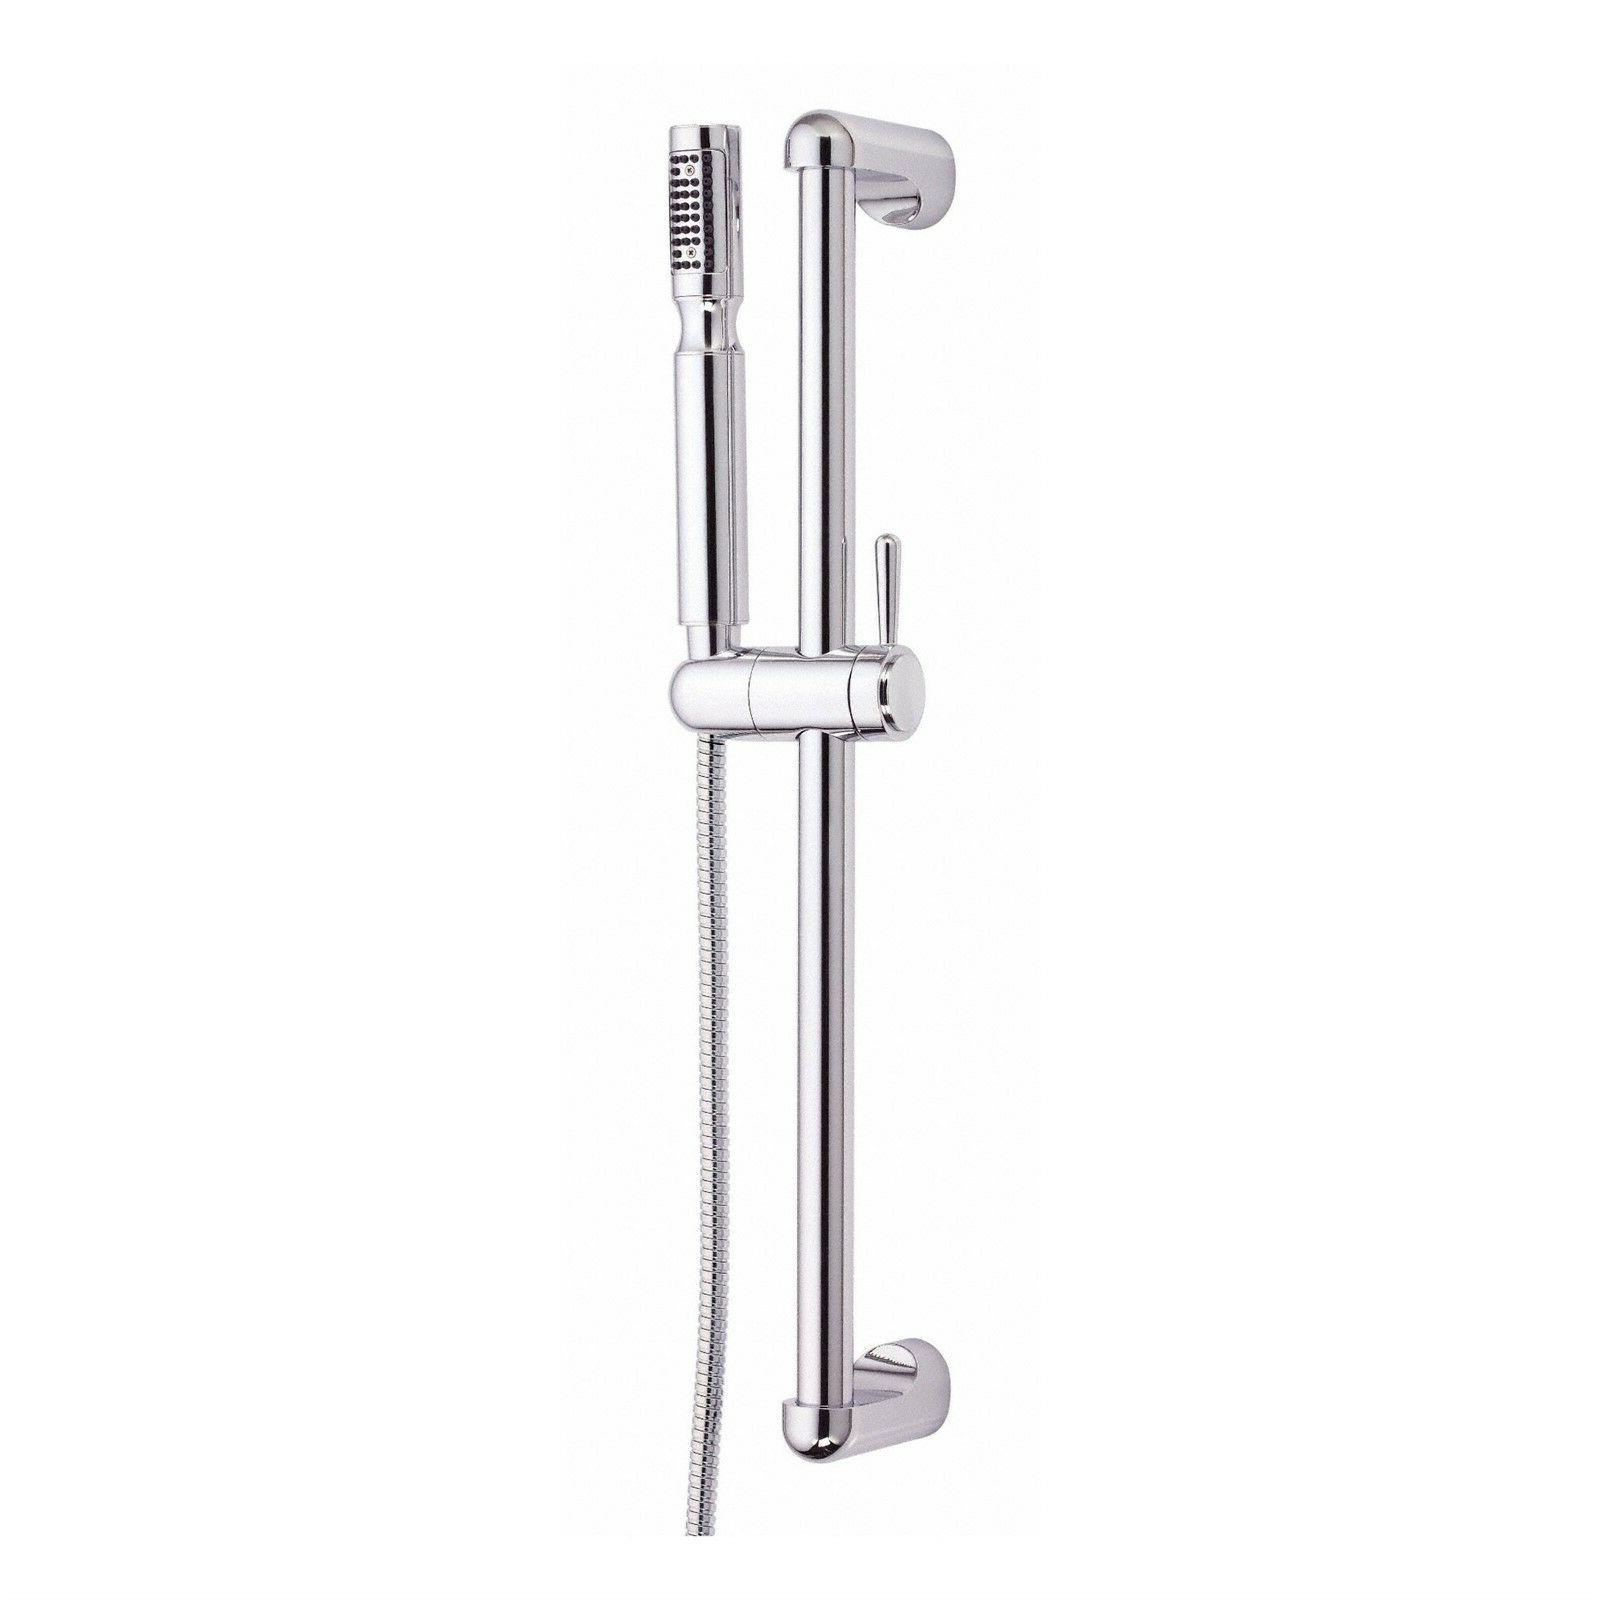 "Danze Chrome Showerstick 24"" Slide Bar Handheld Shower Head"